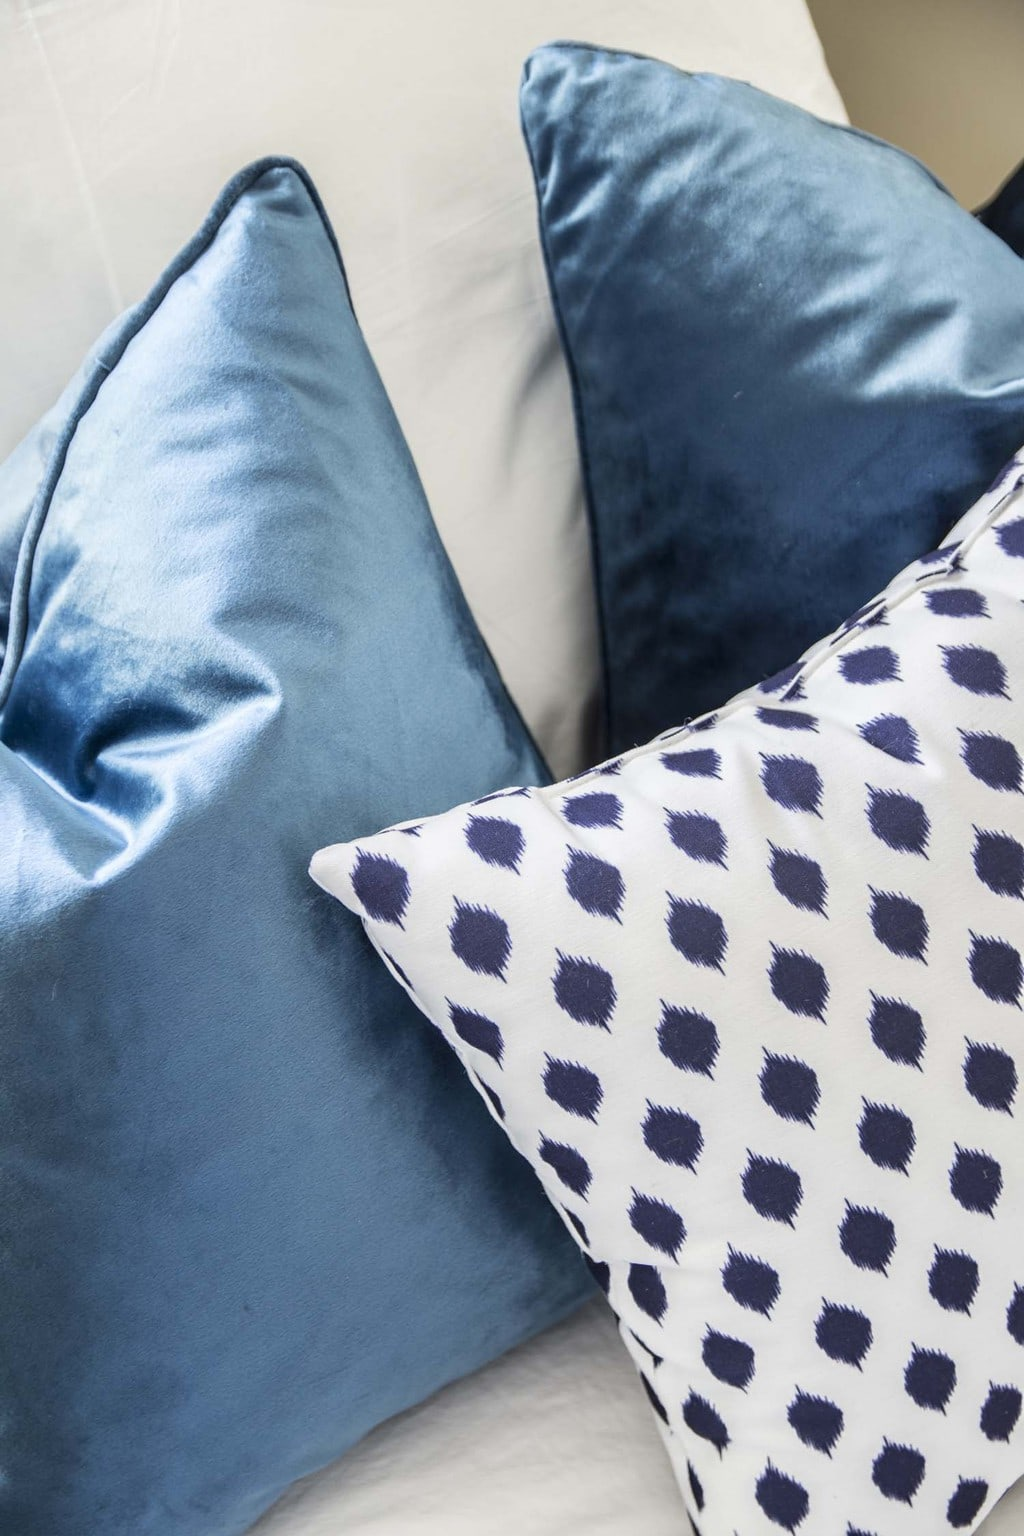 Blue velvet and Ikat dot throw pillows on Thou Swell @thouswellblog